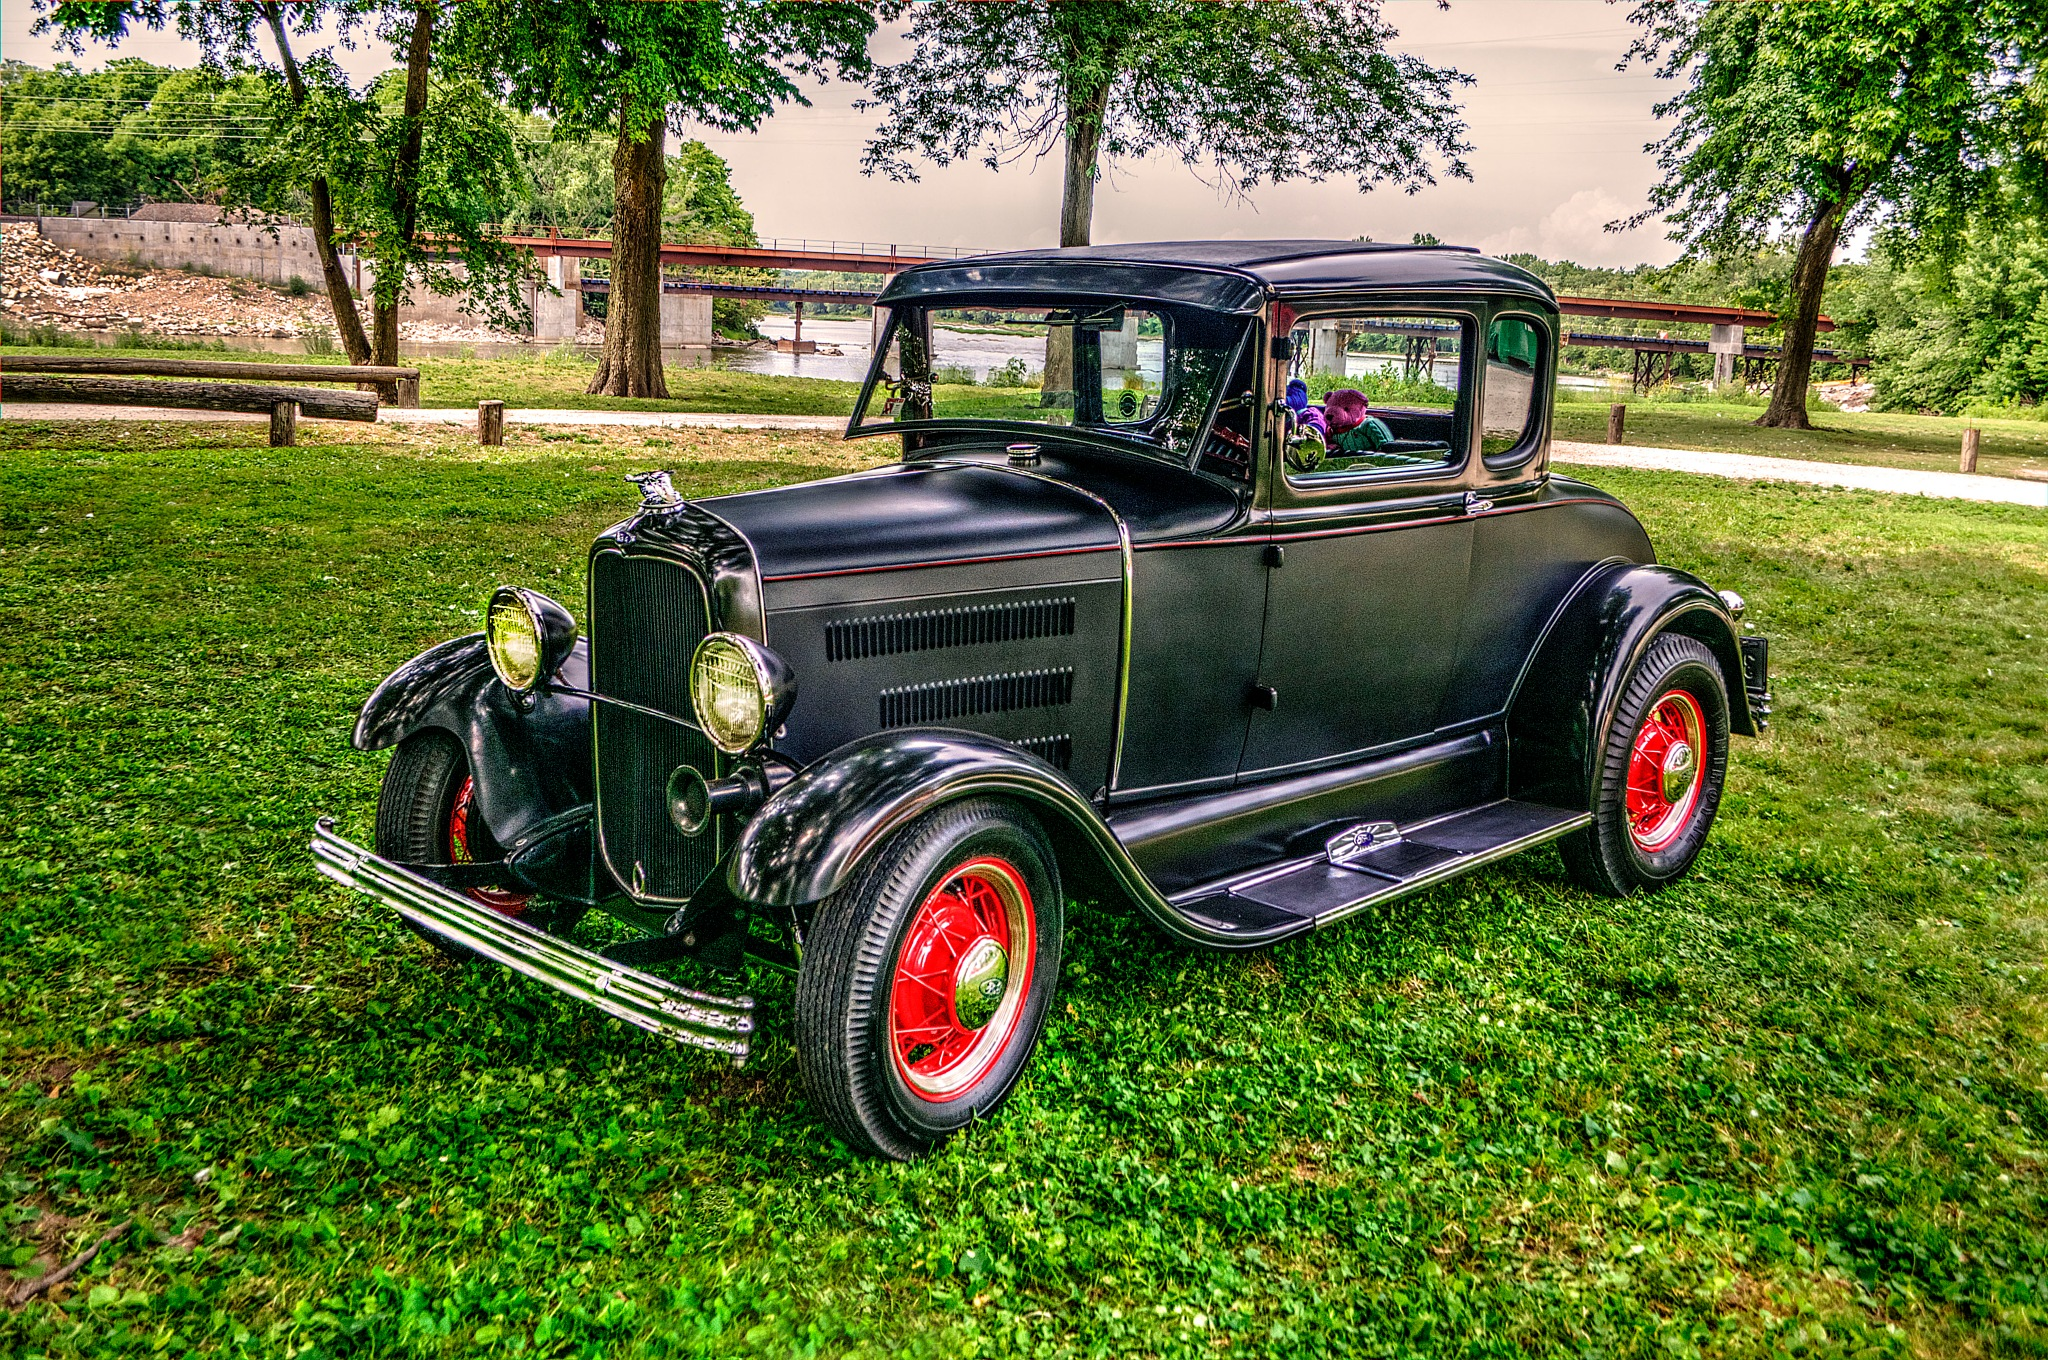 1930 Model A Ford by J. Philip Larson Photography